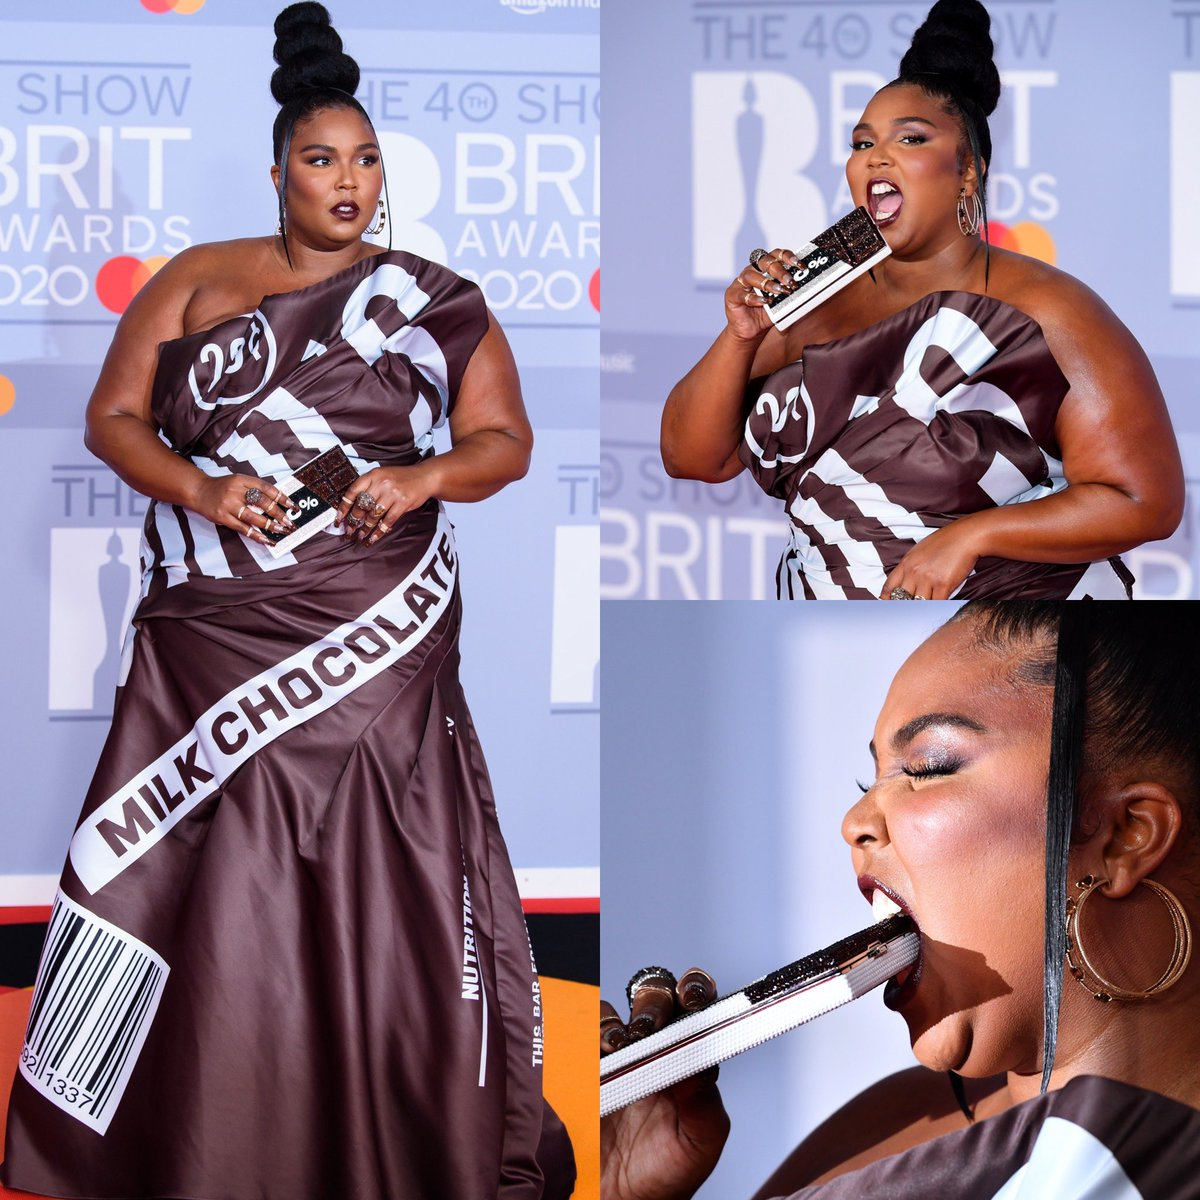 And the winner of the #BritAwards red carpet... @lizzo 💯👏